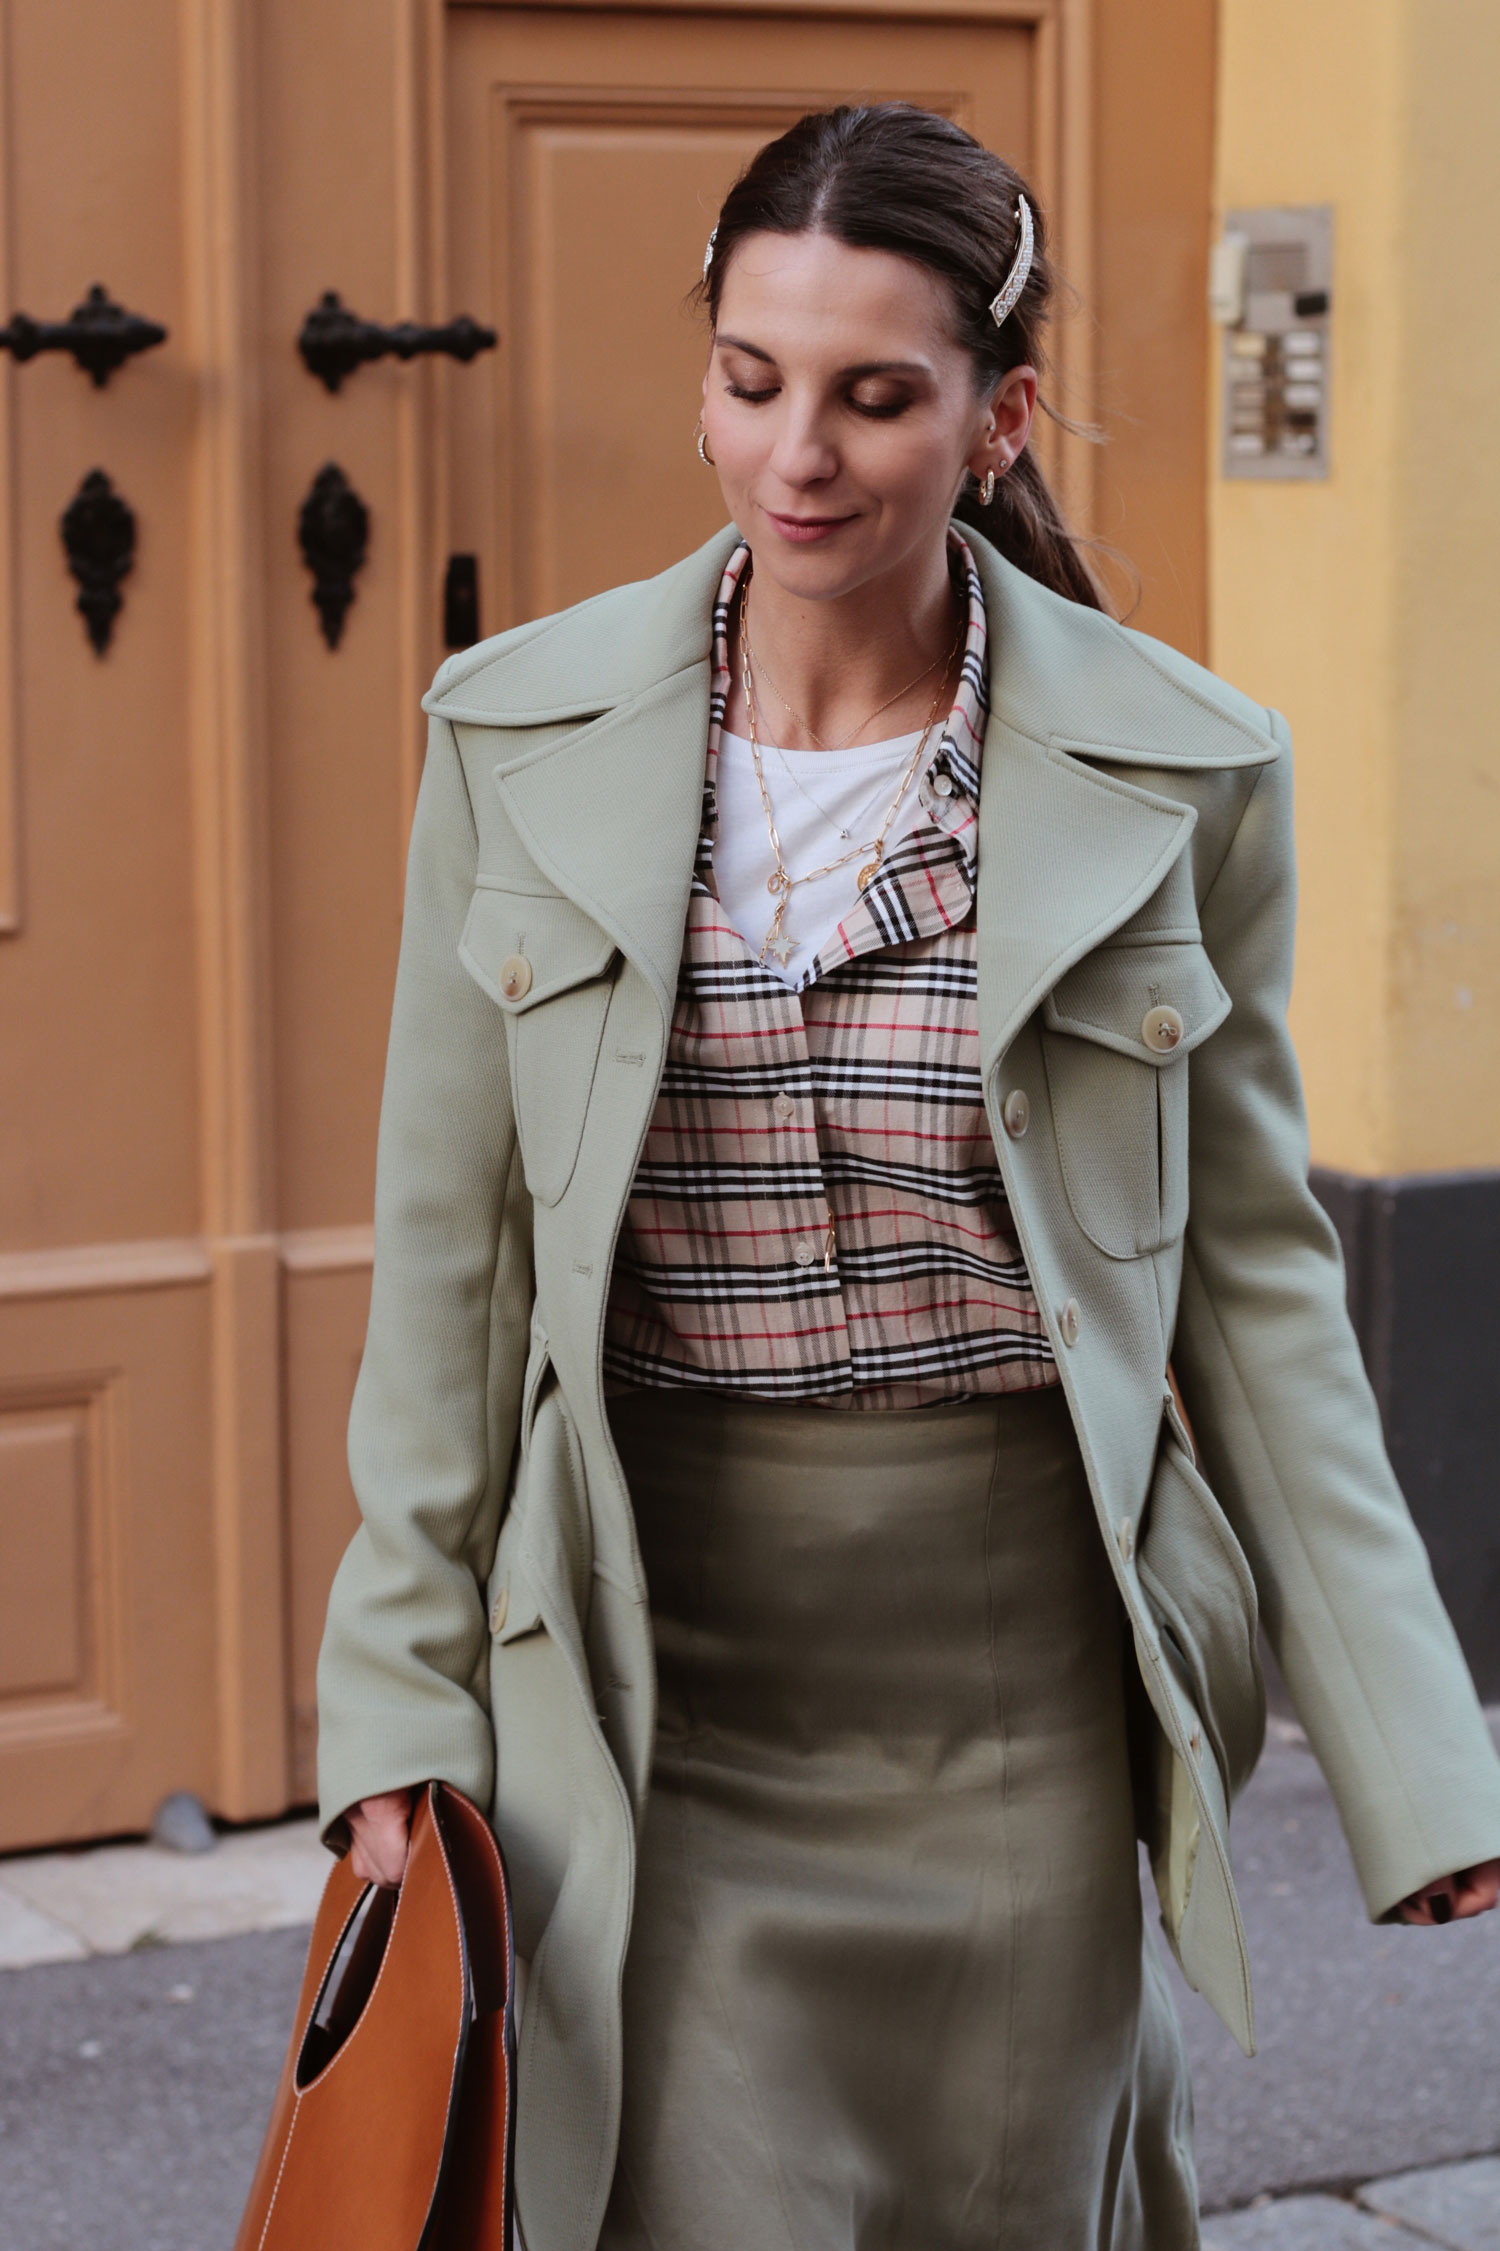 Military Style - www.lesfactoryfemmes.com